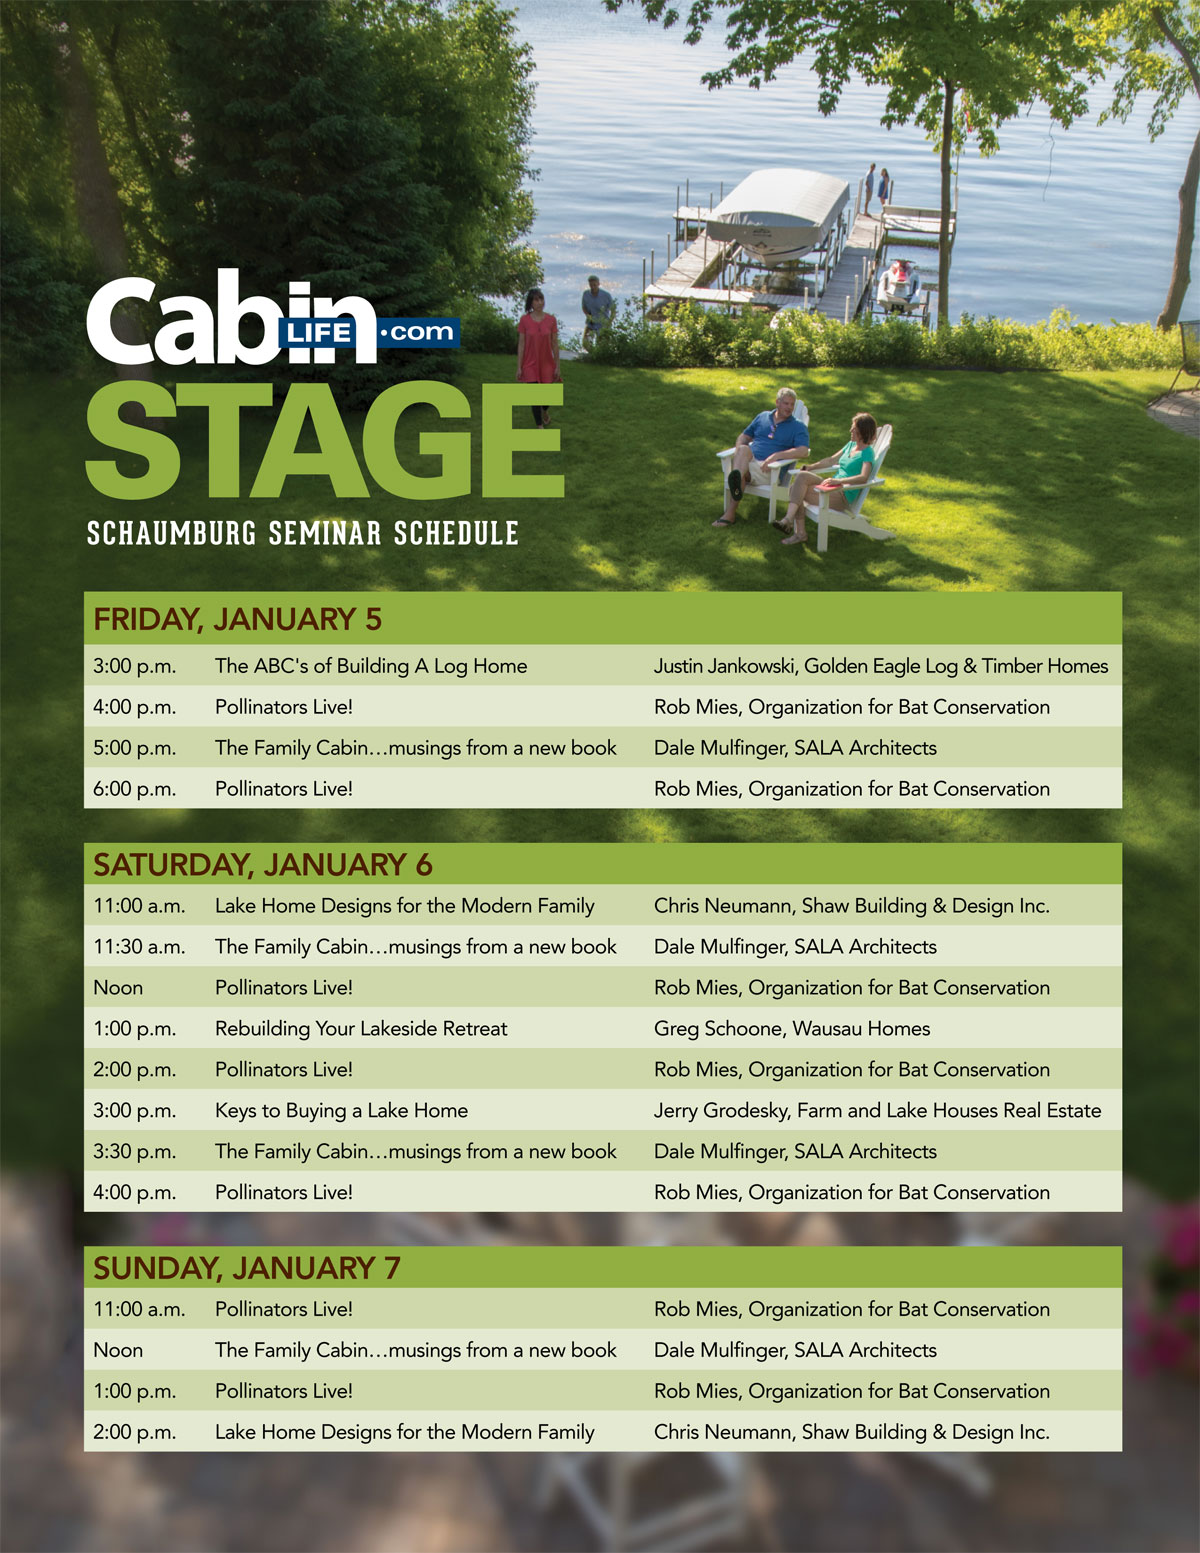 Cabin Life Stage Schedule